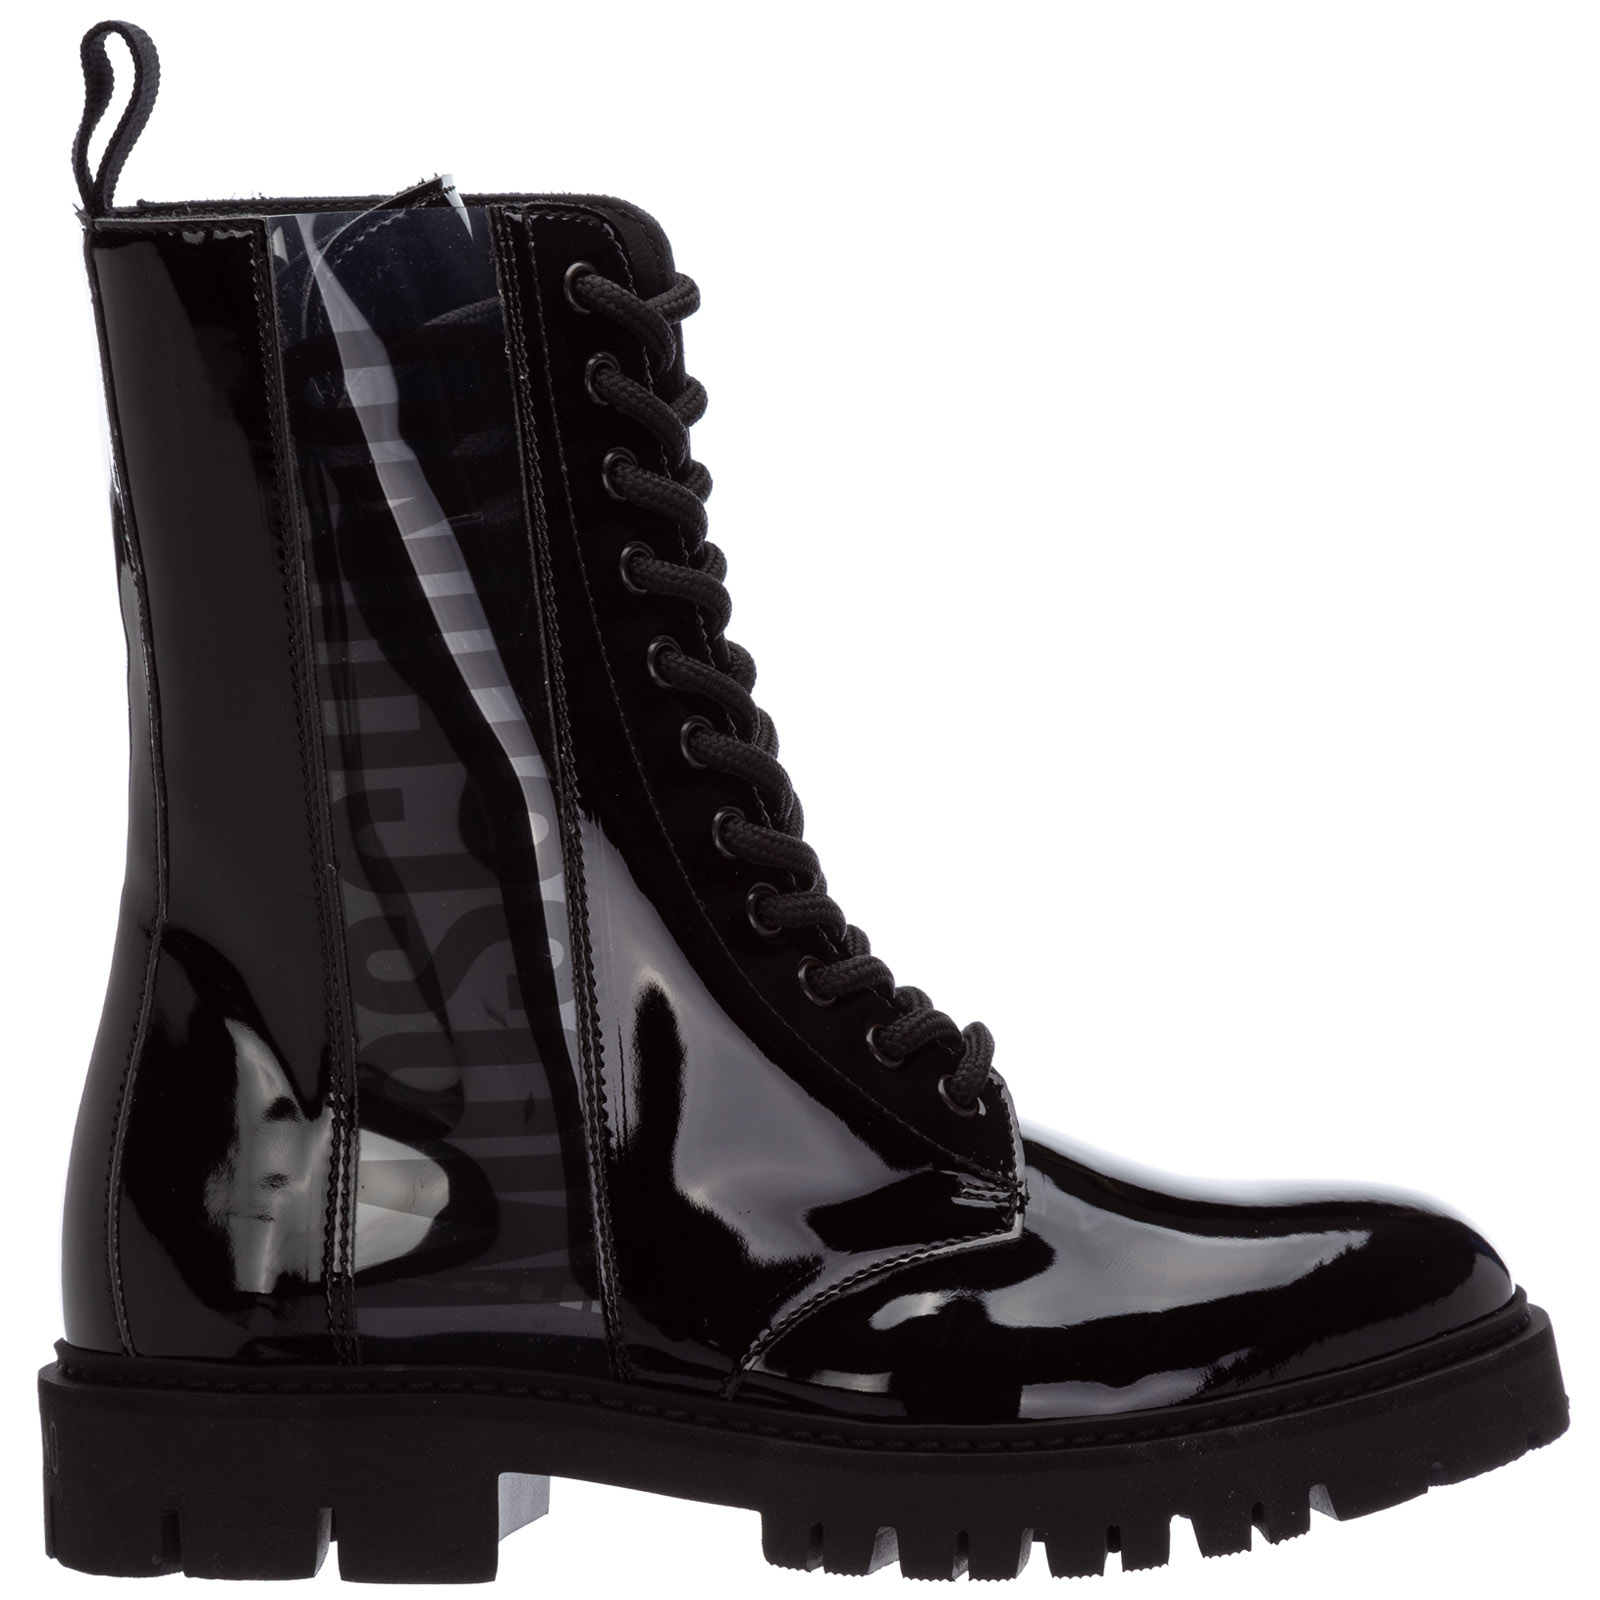 Moschino Boots WOMEN'S COMBAT BOOTS